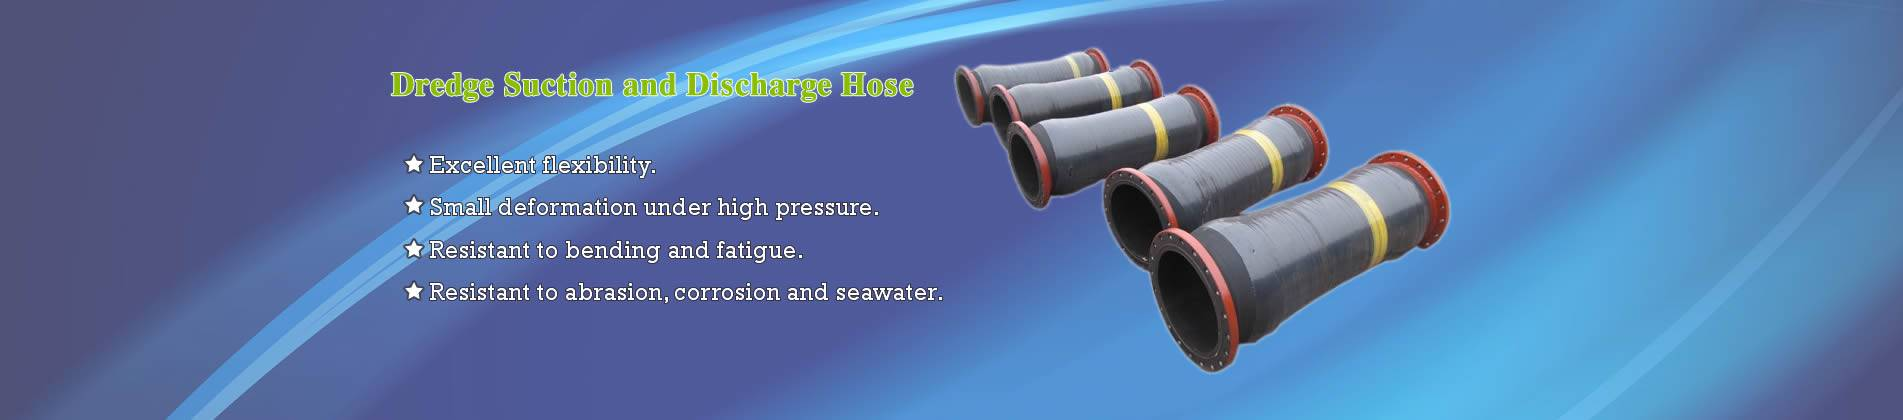 Five short dredge suction and discharge hoses.